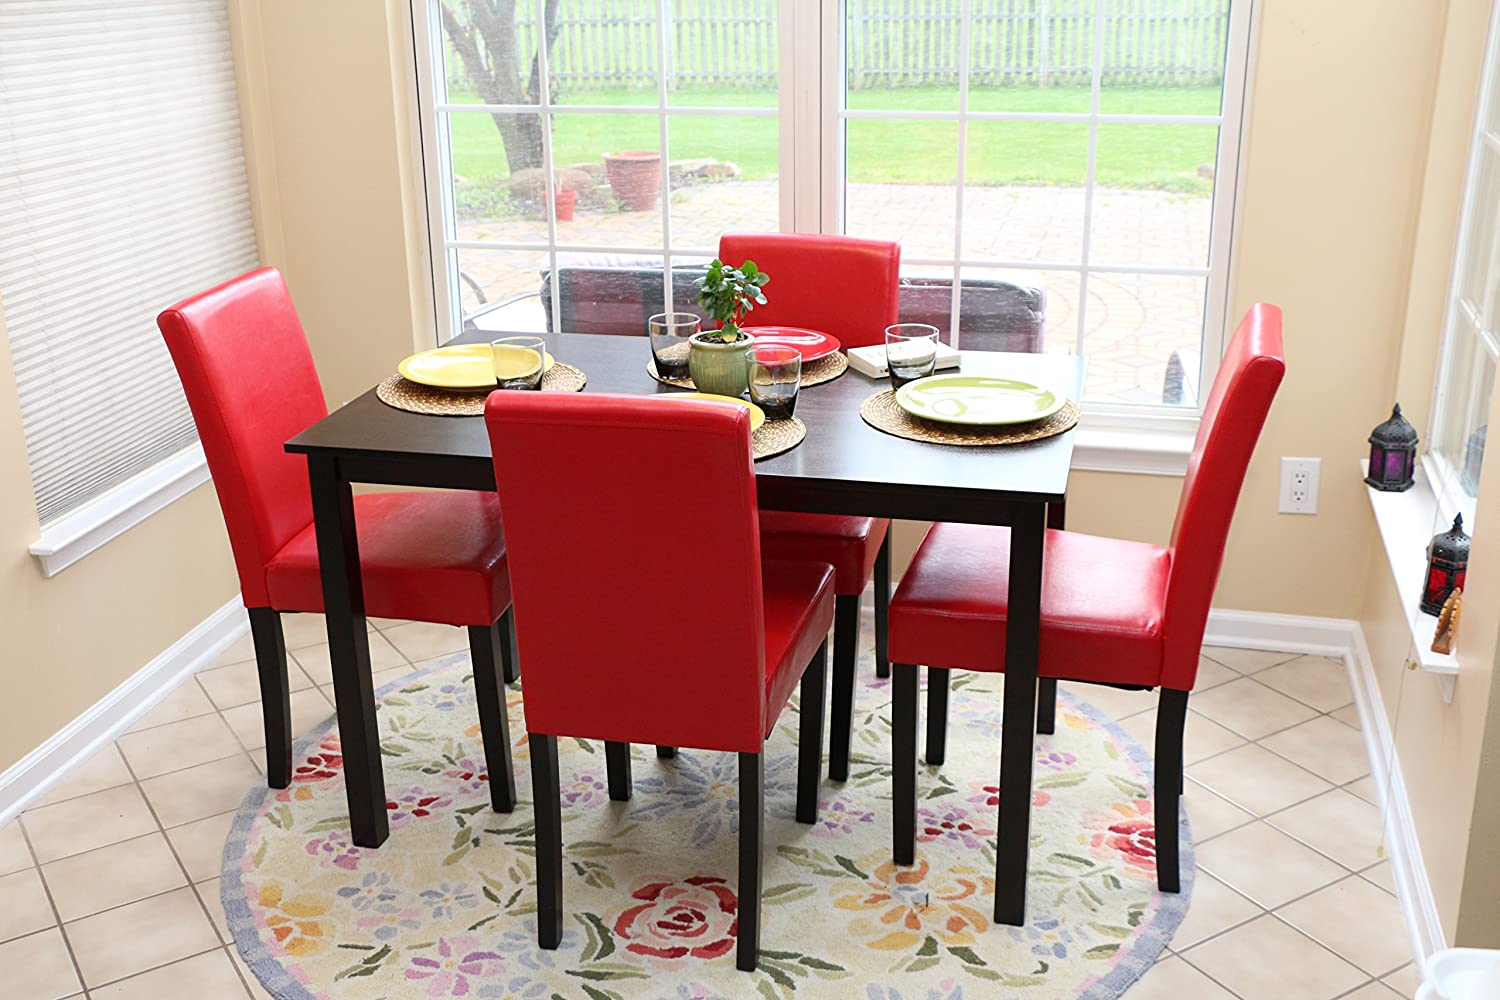 B red kitchen chairs Amazon com 5 PC Red Leather 4 Person Table and Chairs red Dining Dinette Red Parson Chair Table Chair Sets